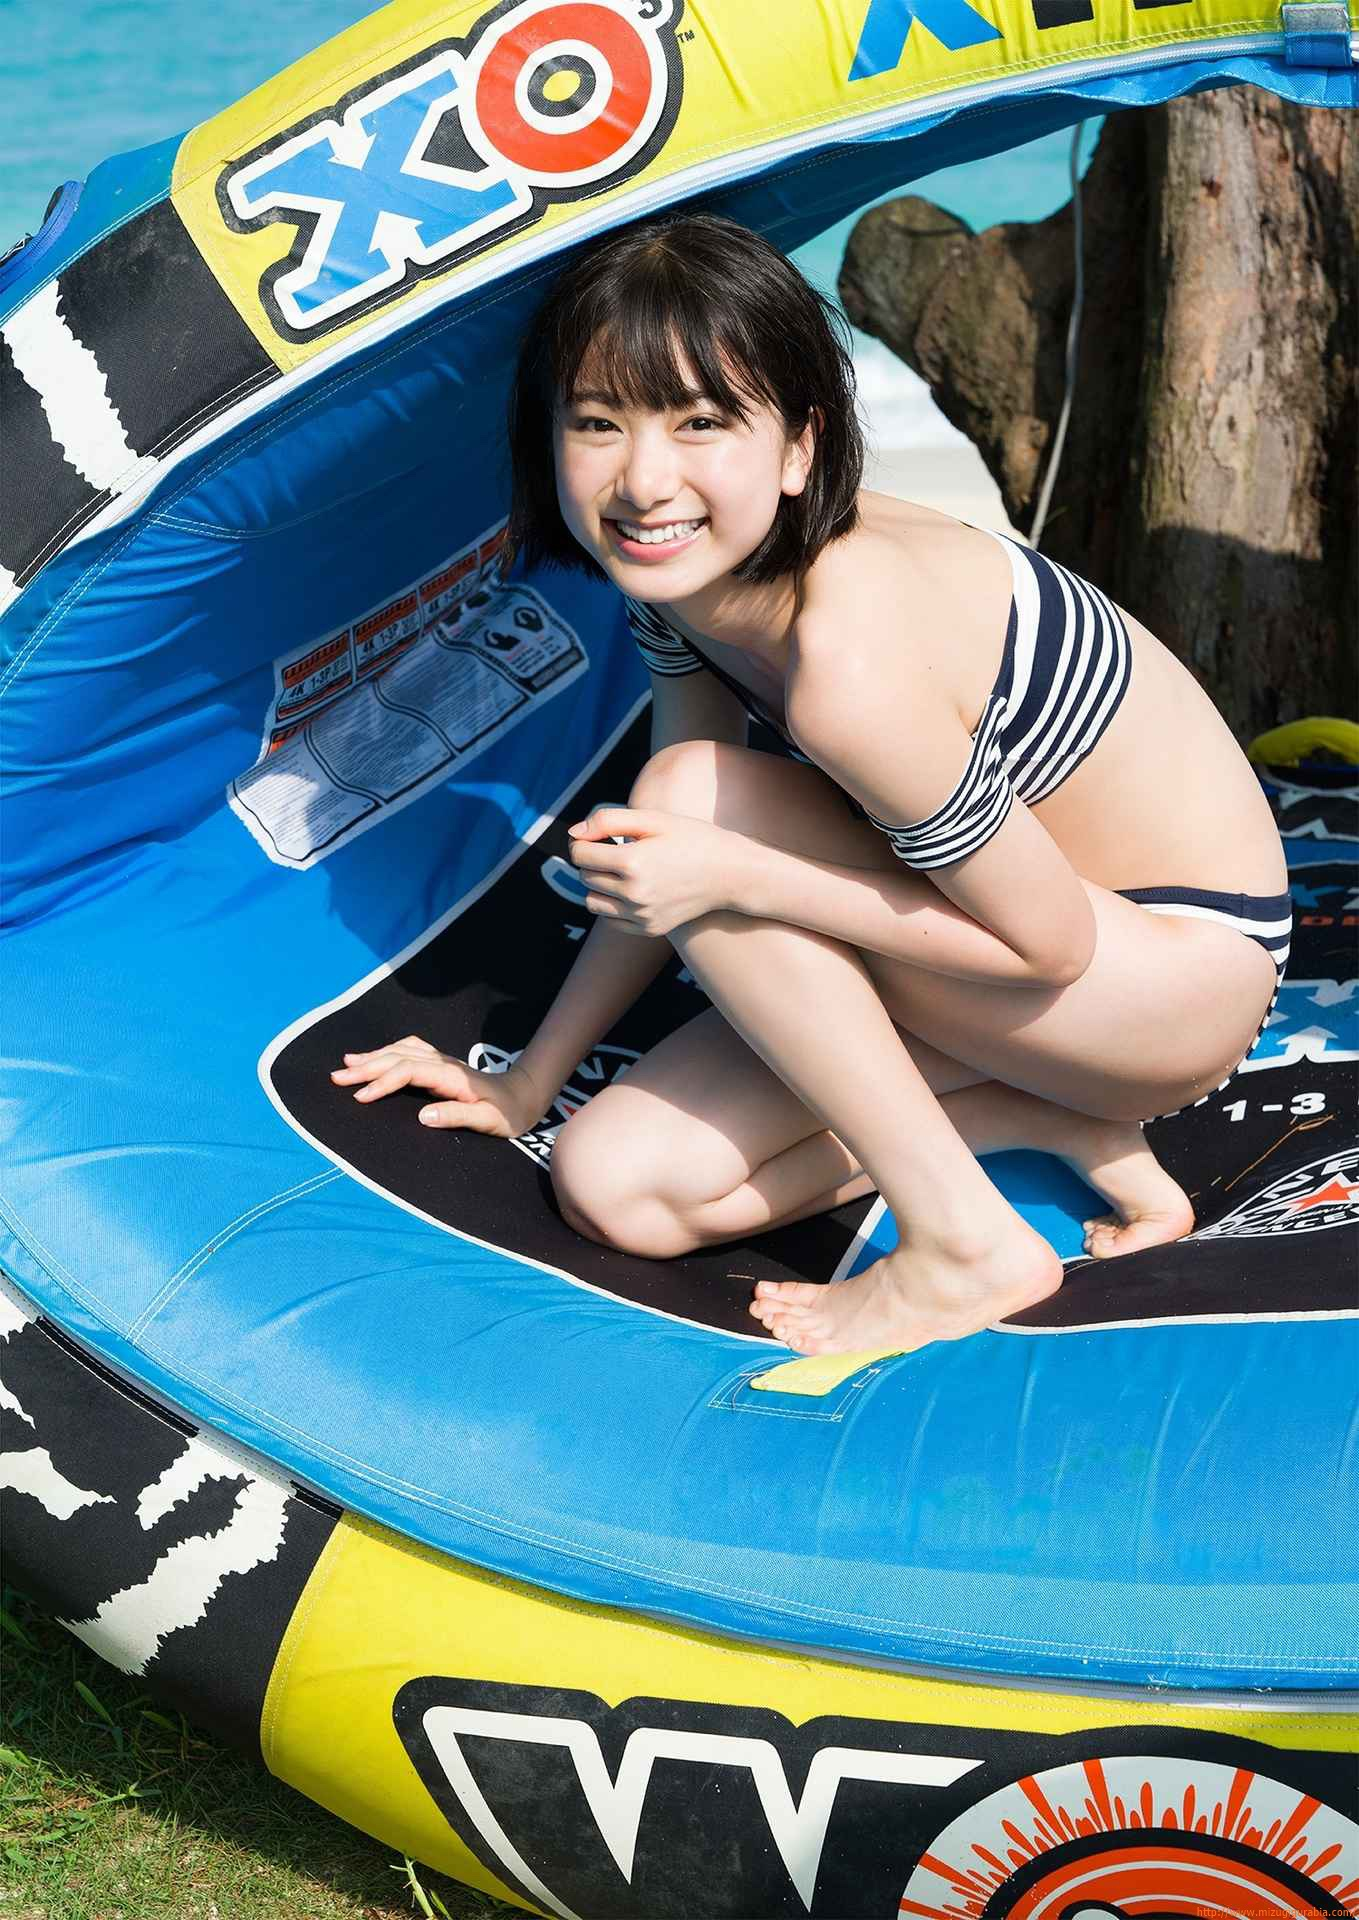 First swimsuit gravure of a beautiful girl of 16 years old topic025